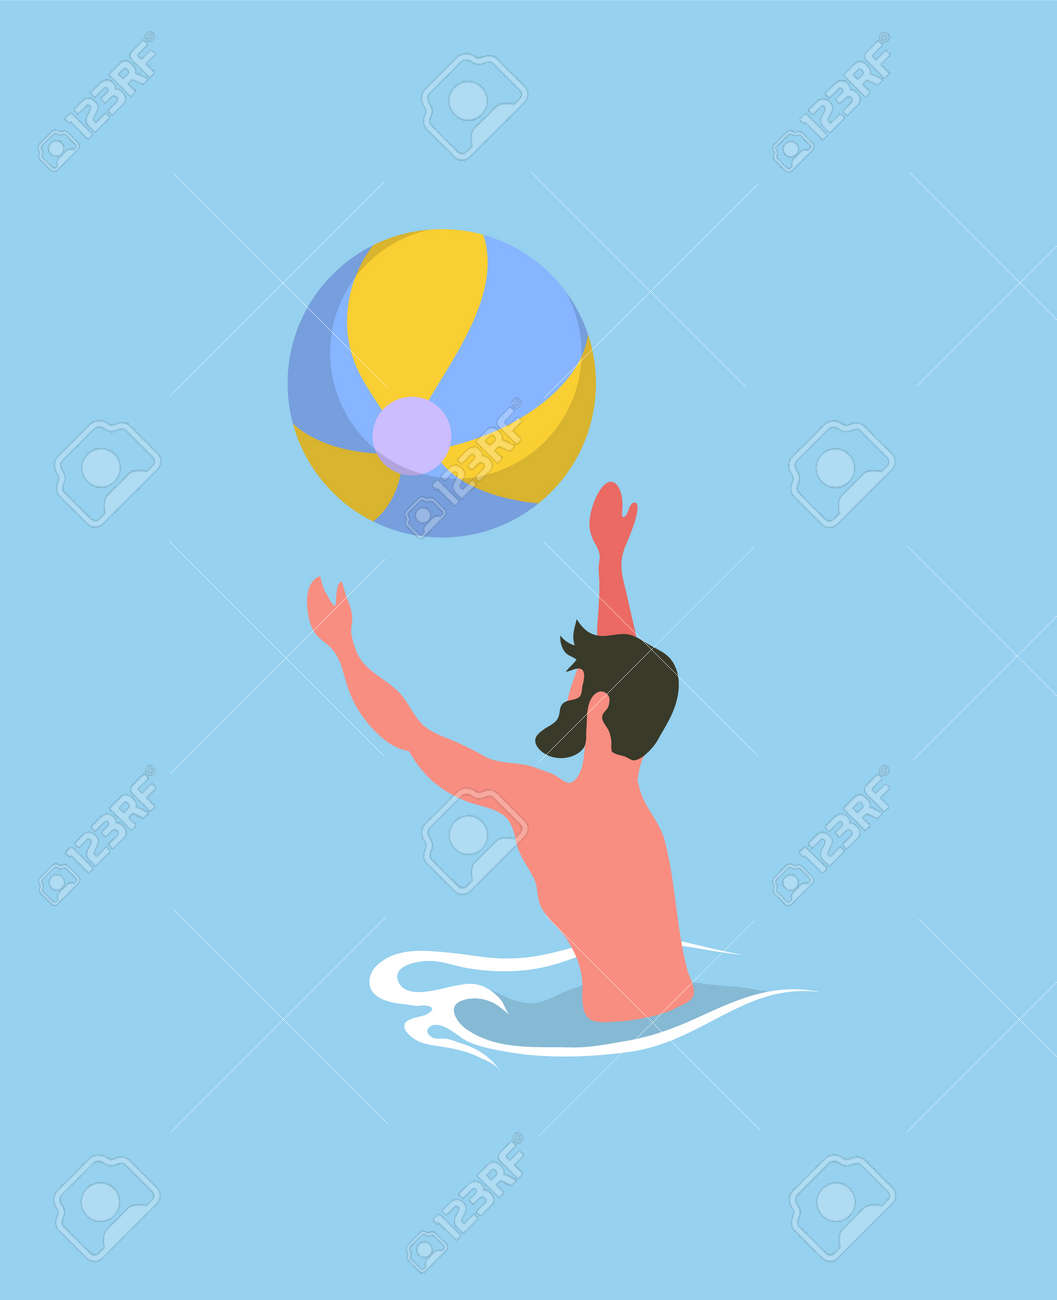 Man Playing Ball In Water Tossing And Catching Colorful Rubber